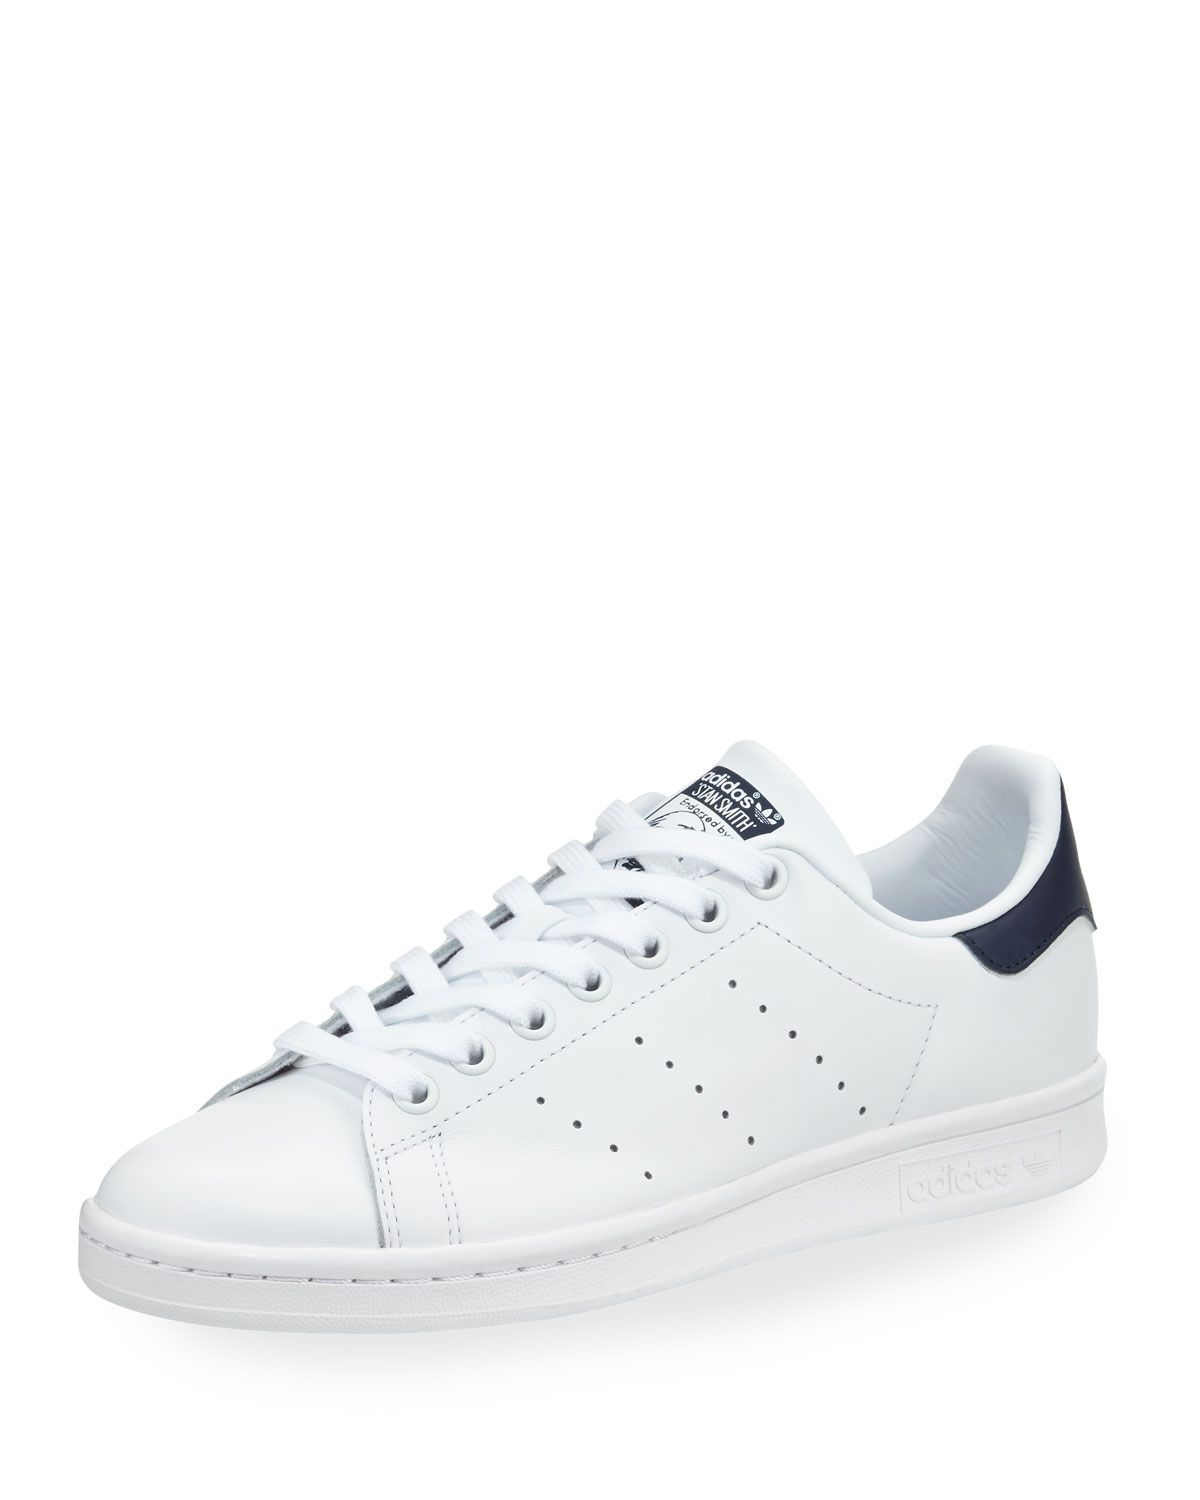 info for b3818 434c4 Stan Smith Fashion Sneaker, White Collegiate Navy · Adidas Stan SmithHigh  Top SneakersCat CatFlat ShoesTop ...